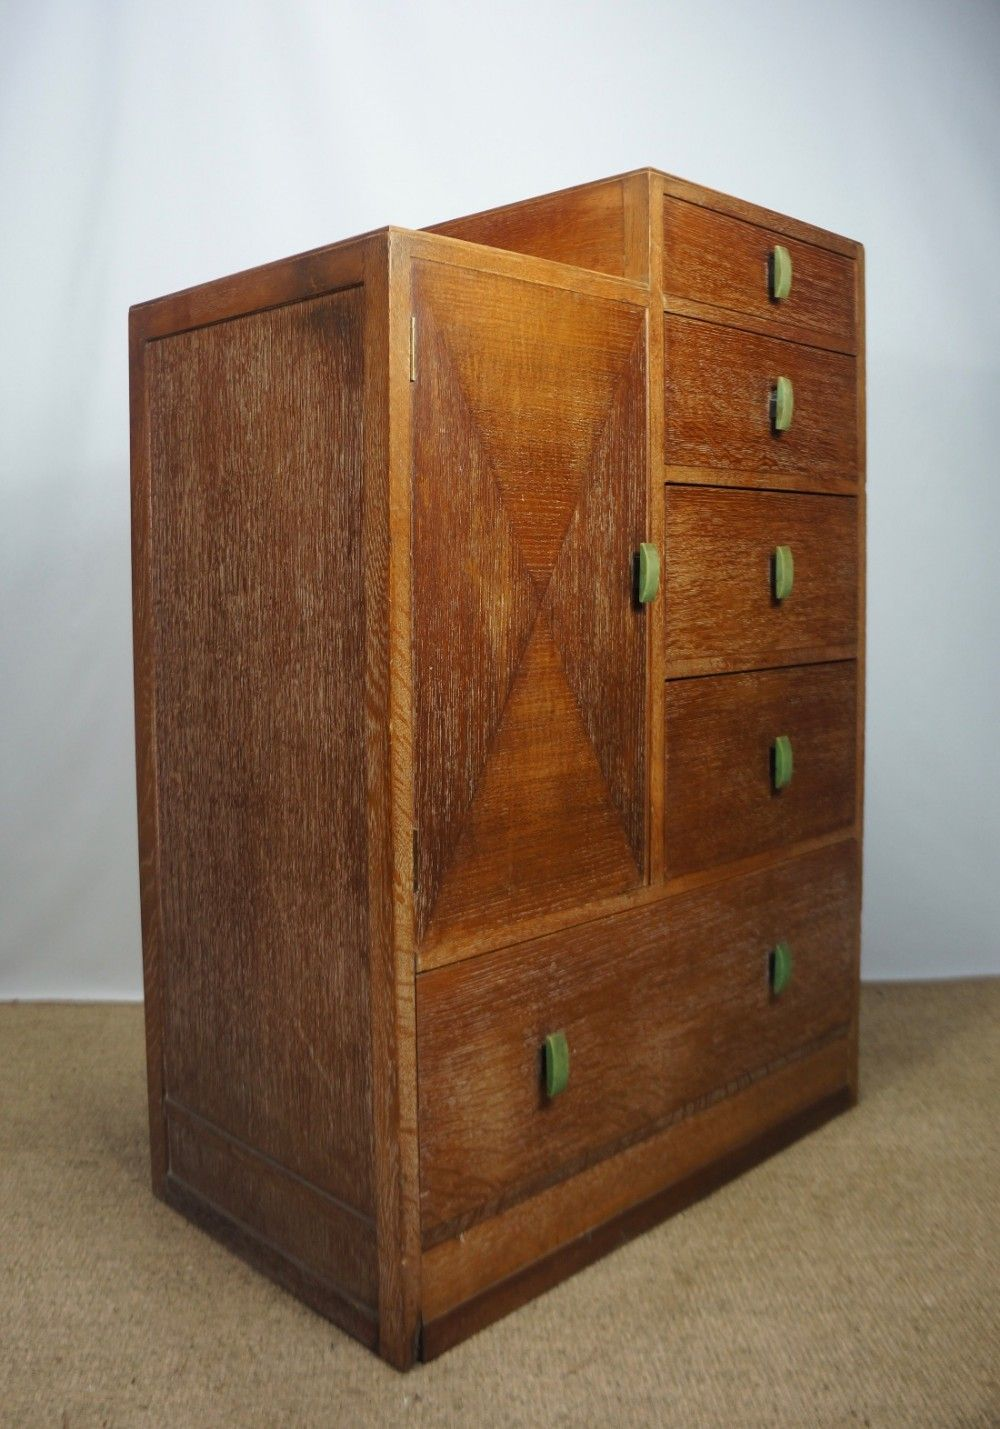 Limed Oak Tallboy Chest Of Drawers In The Manner Heals